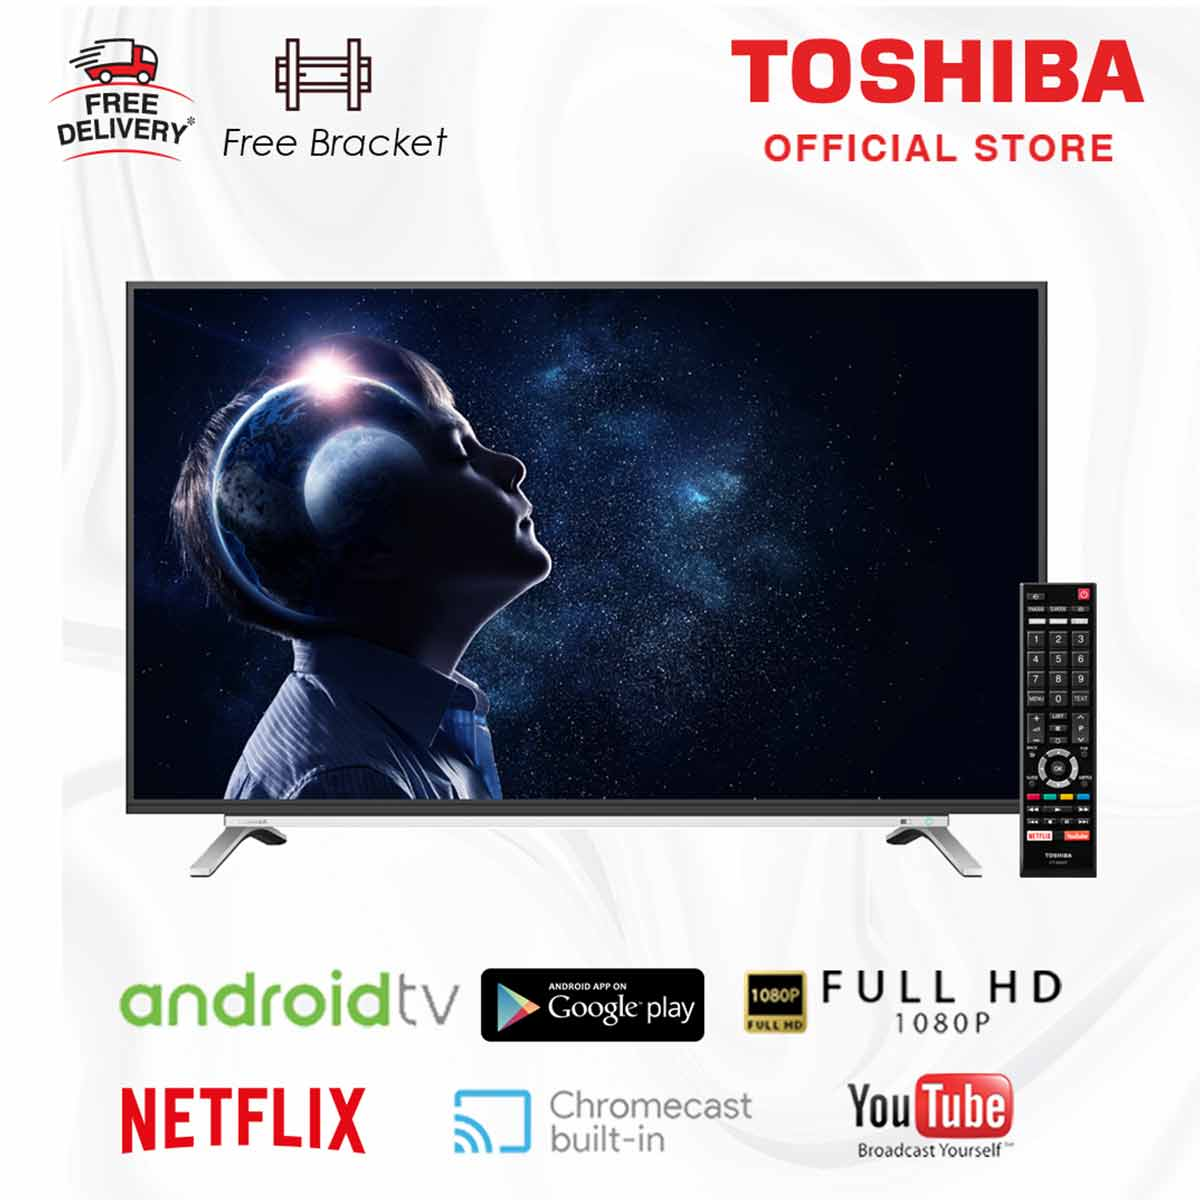 Toshiba 43L5995 2K LED Android Smart Digital TV 43 Inch UHD with Google You Free Bracket